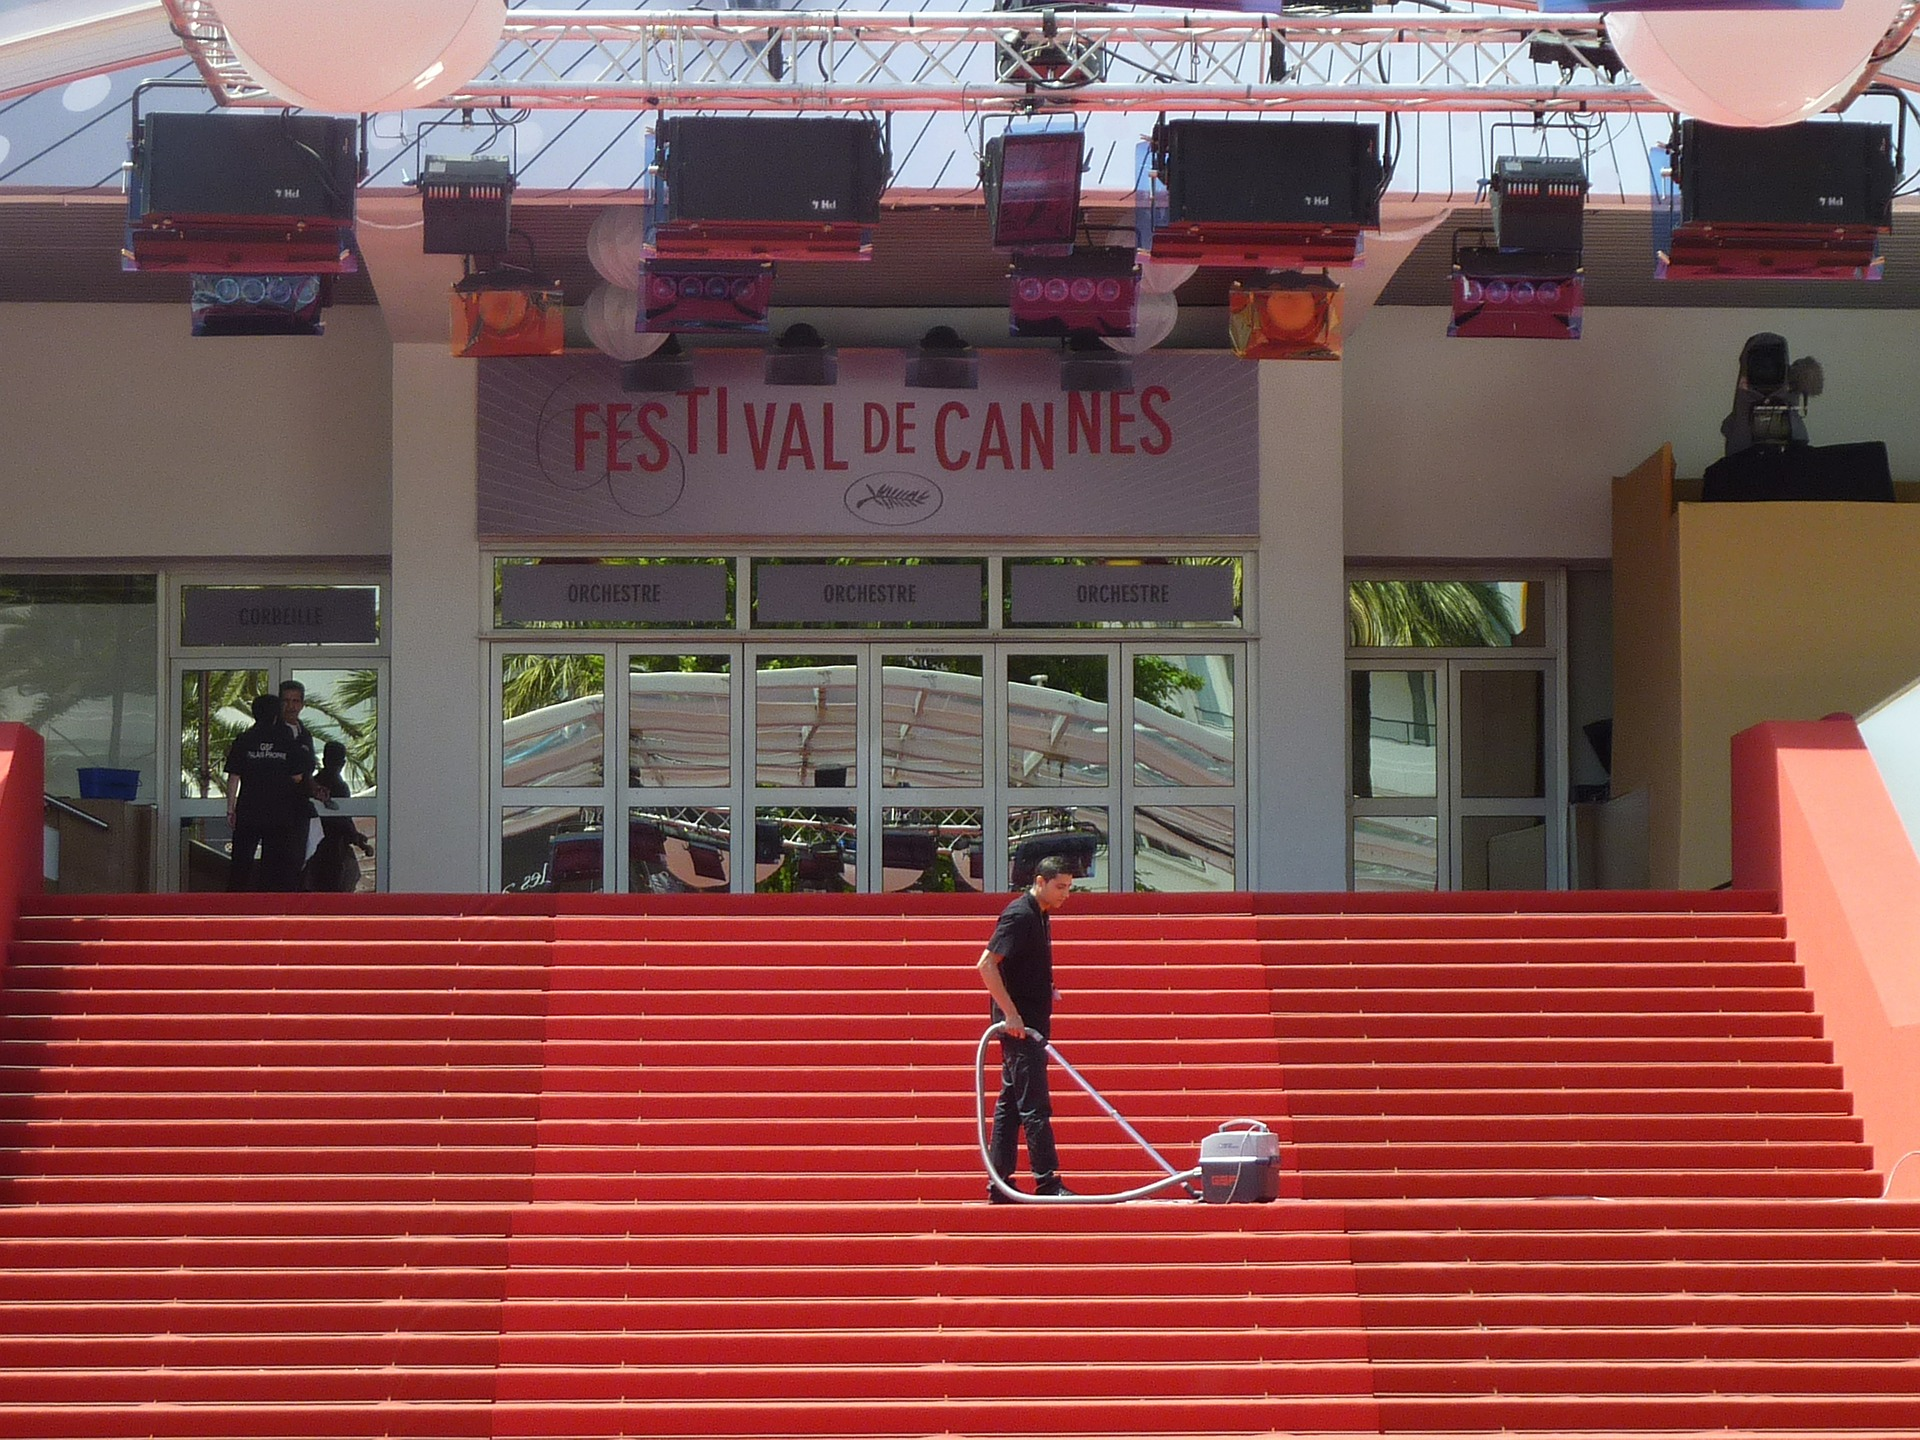 Where is cannes located